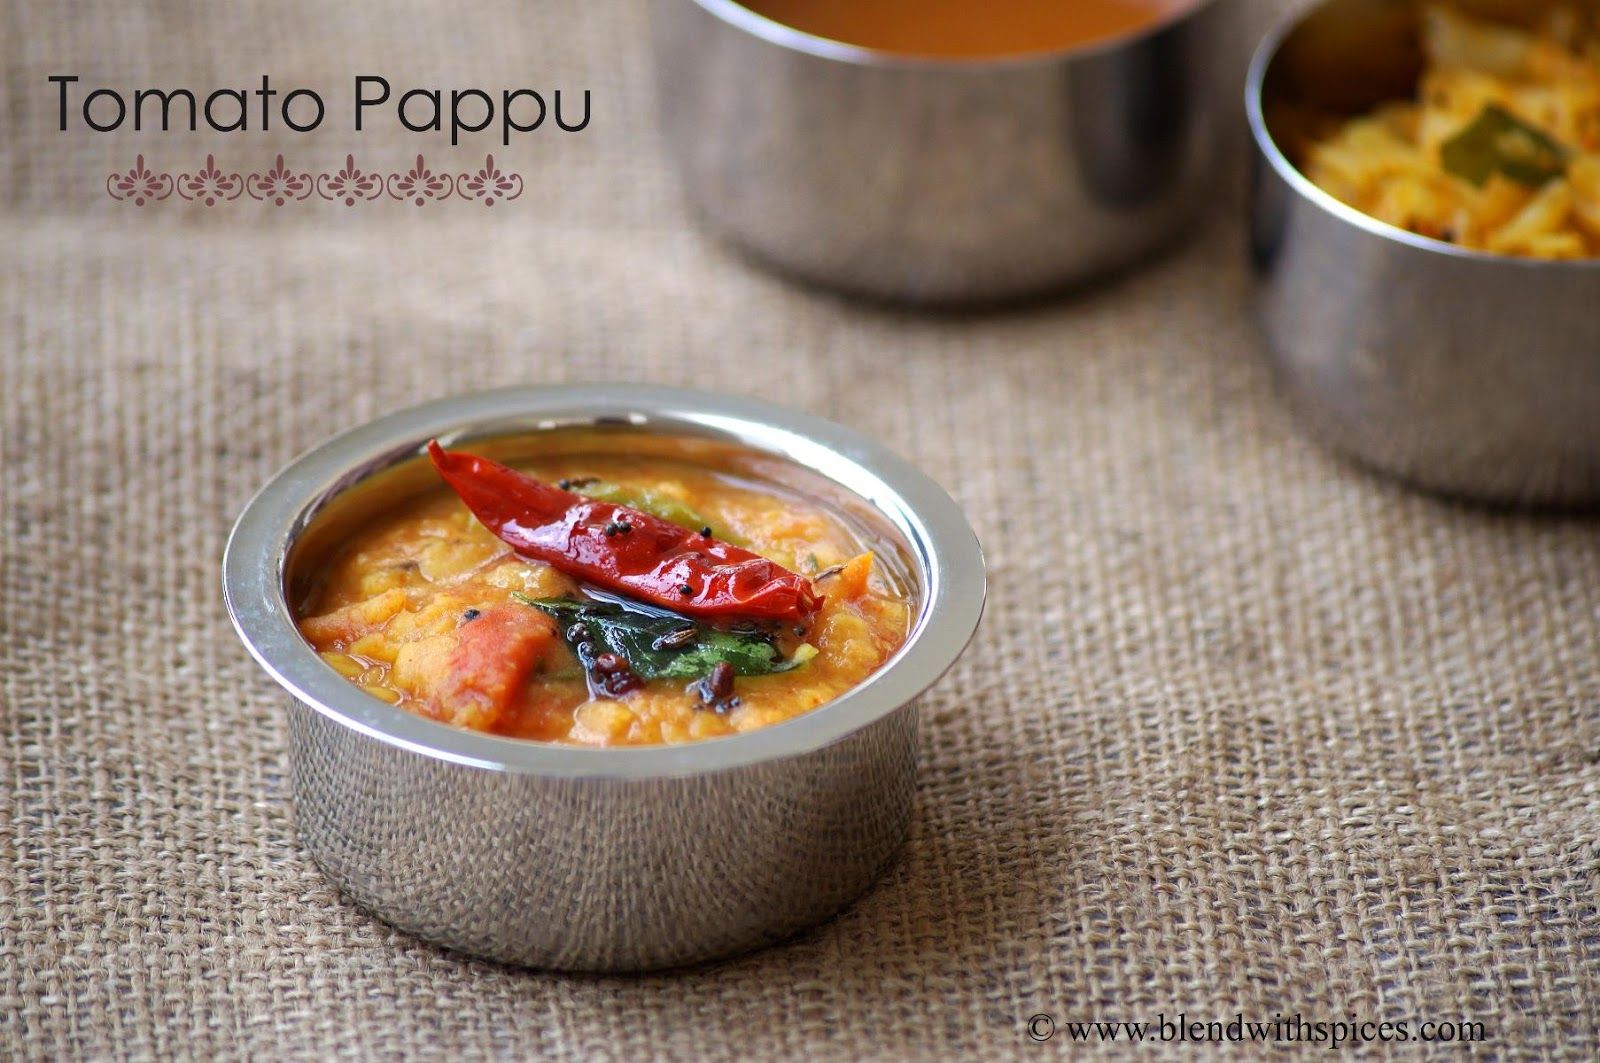 tomato dal recipe, how to make tomato dal, andhra tomato pappu recipe, tomato pappu andhra style